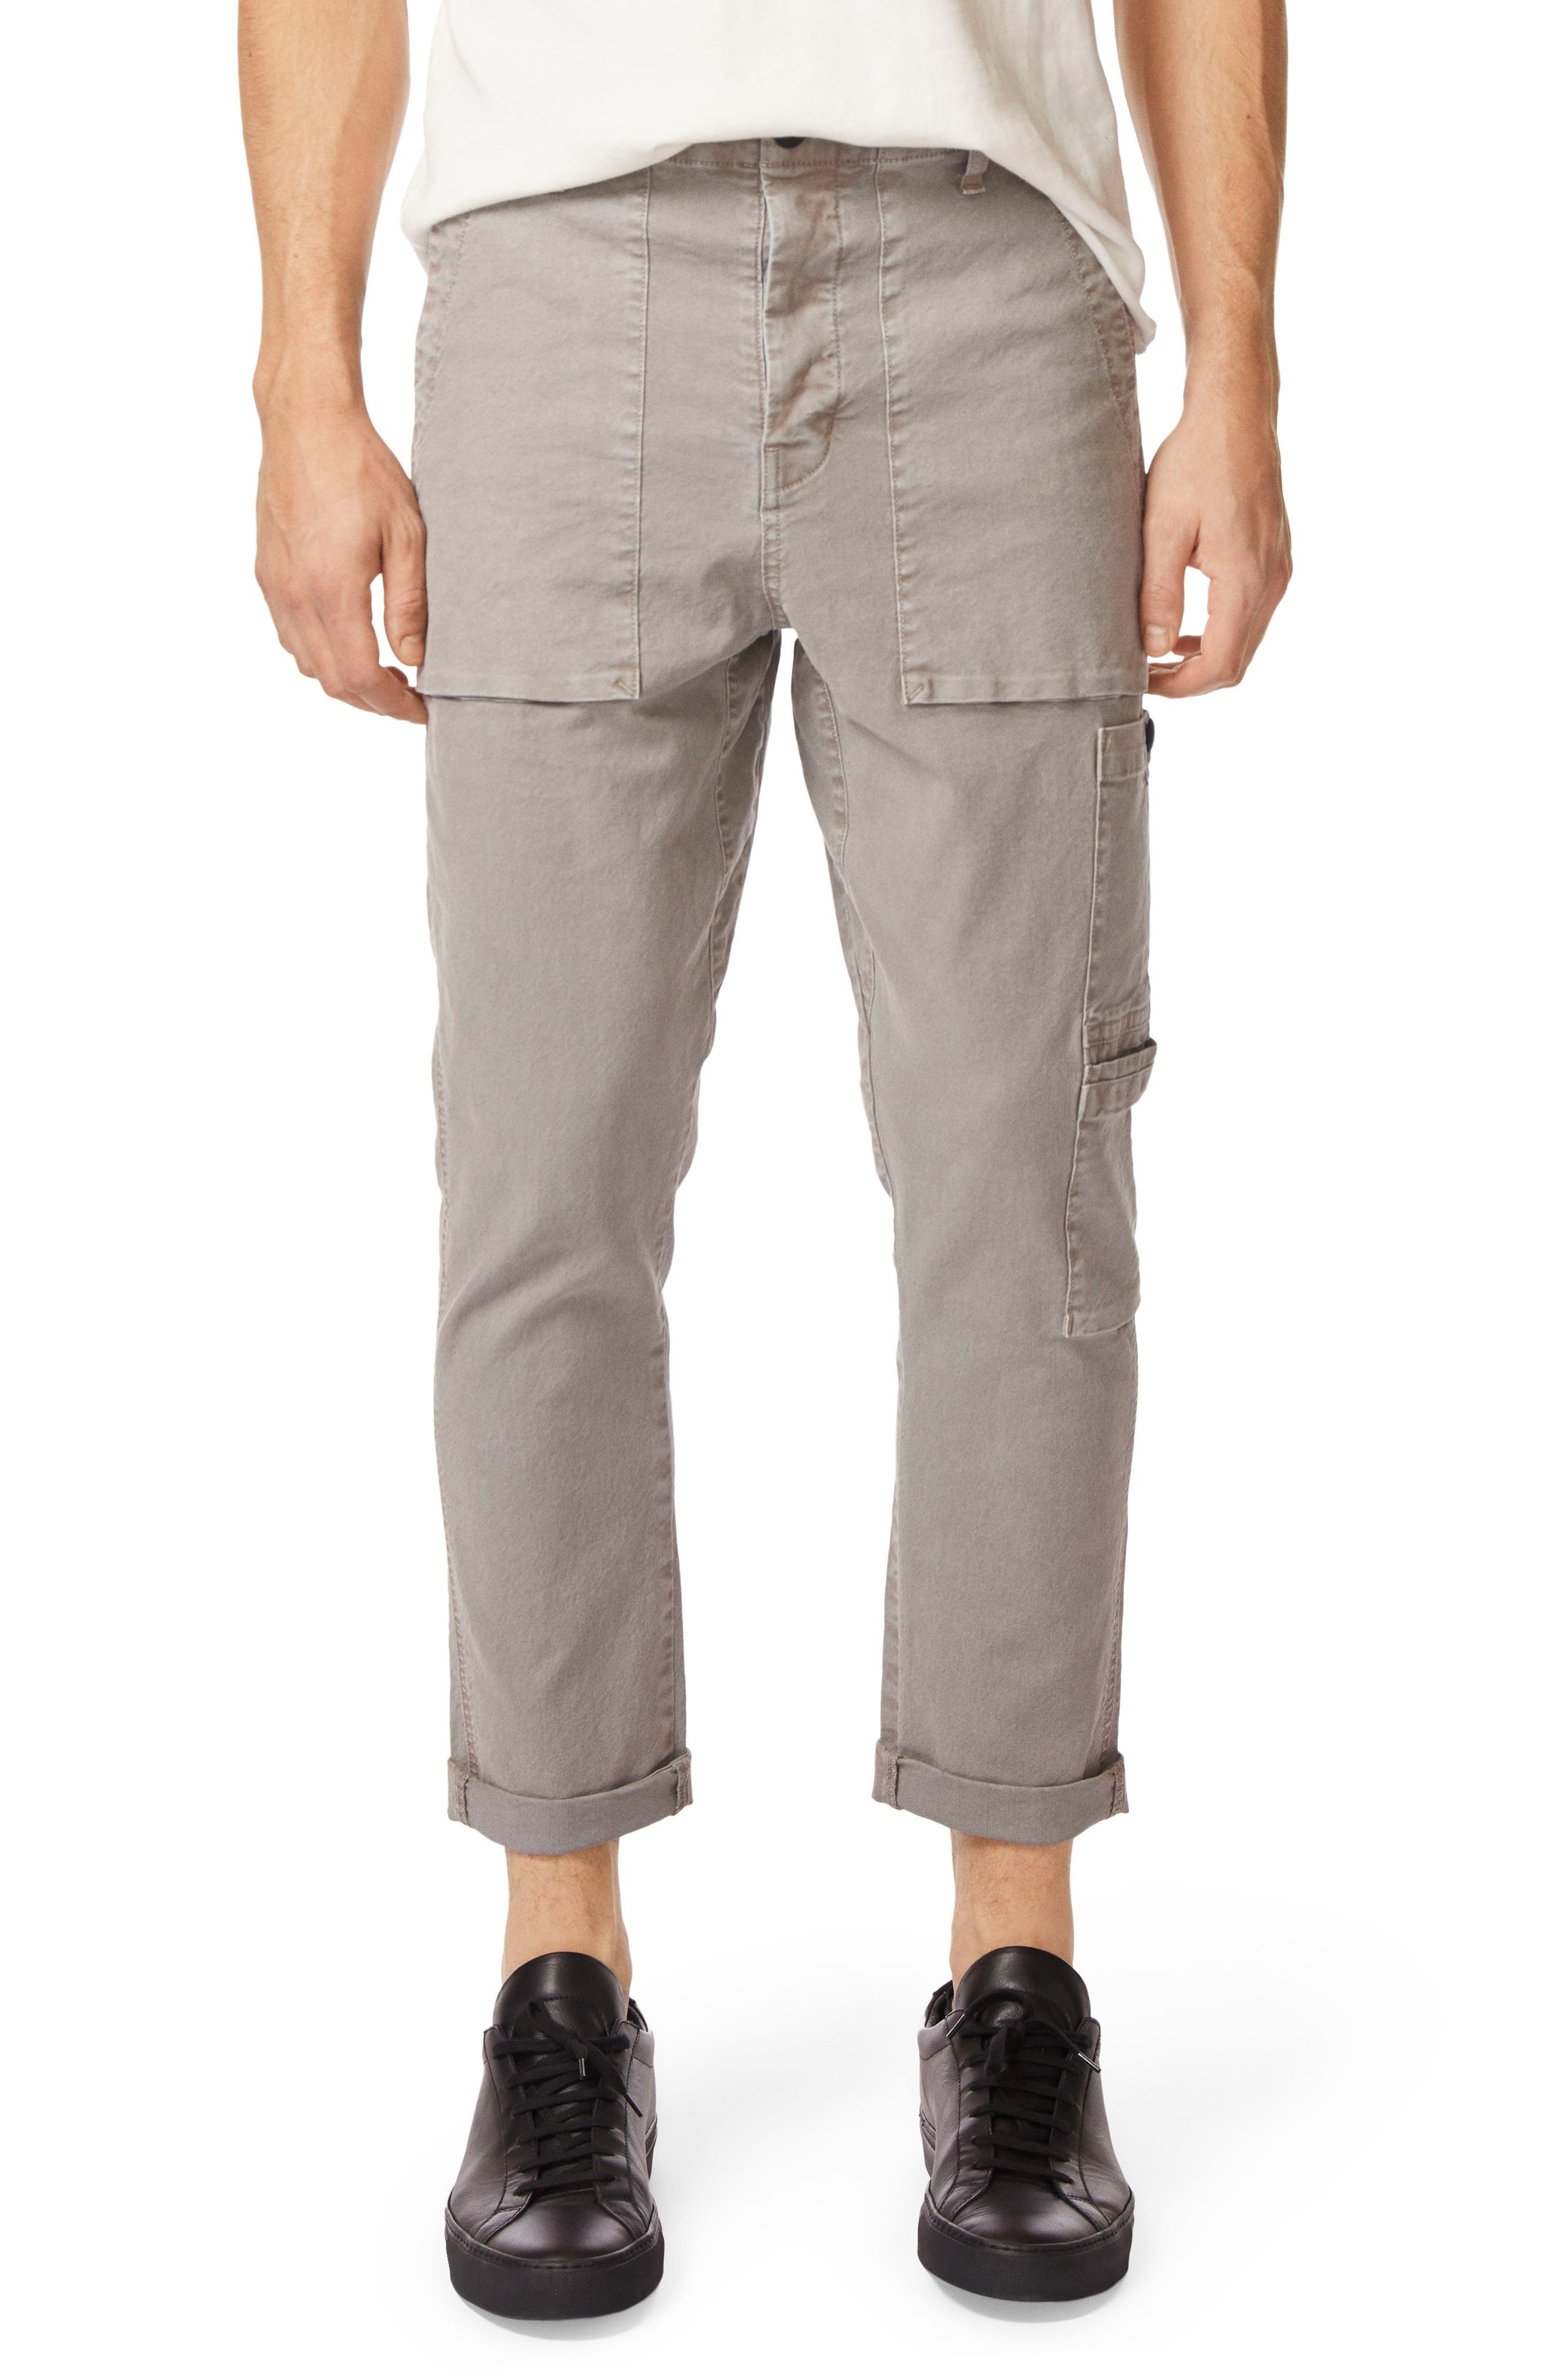 Koeficient Straight Fit Pant,                         Main,                         color, 314